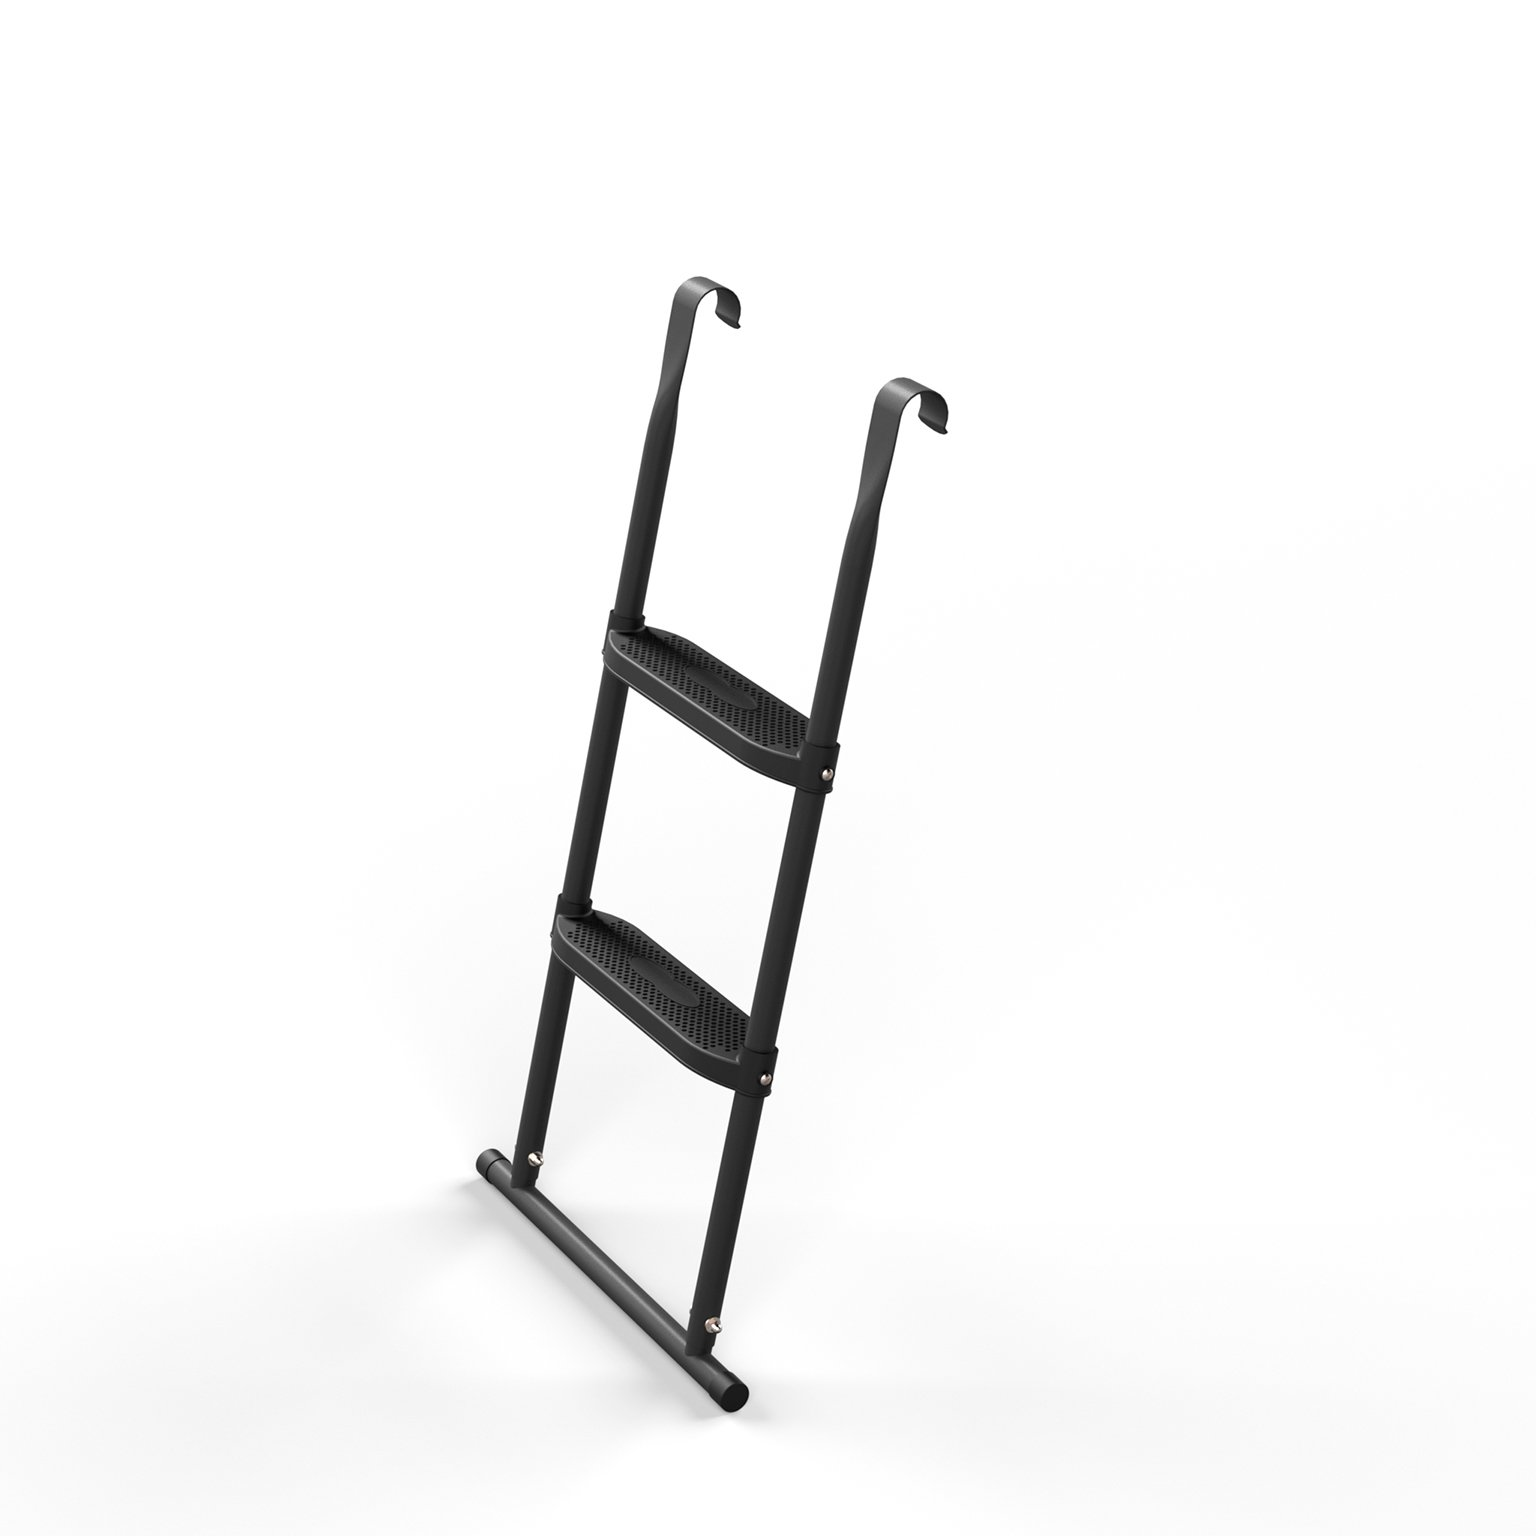 Acon Air Trampoline Ladder (Fits Other Brands)